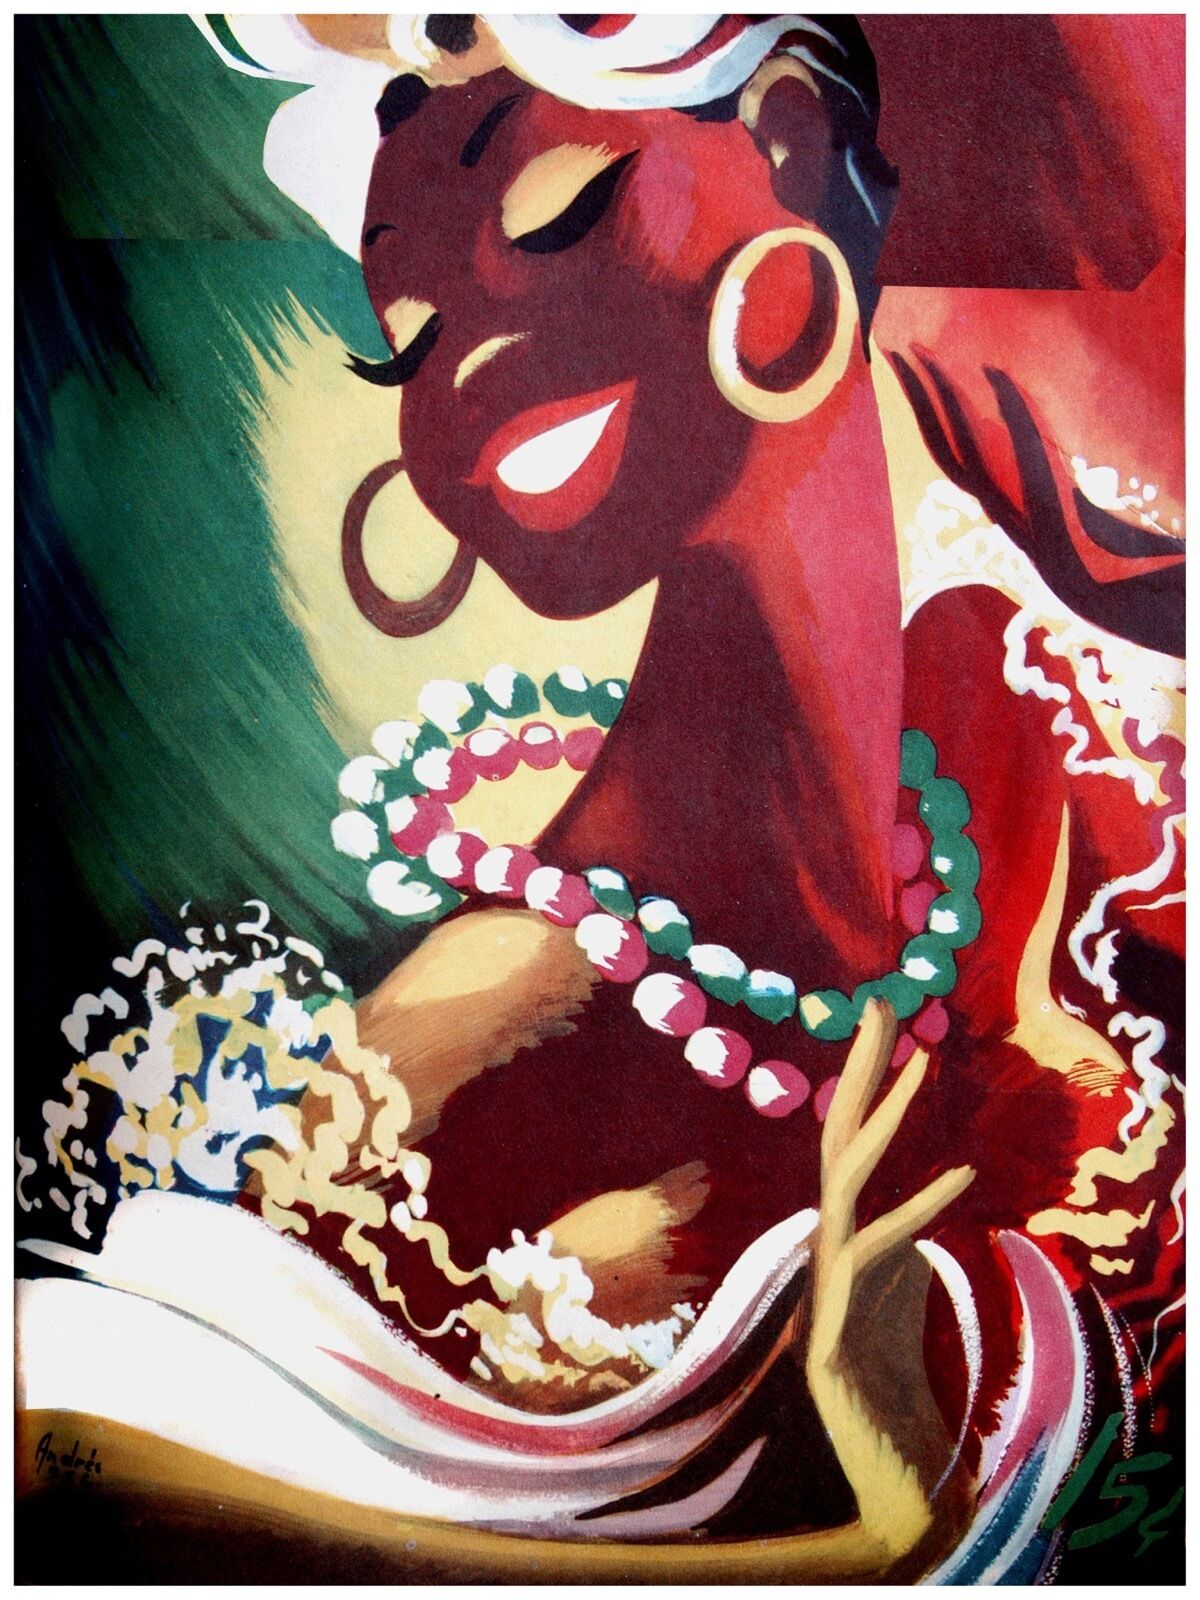 High Quality POSTER on Paper or Cotton Canvas.Home Decor art.Brazil Dancer.3845